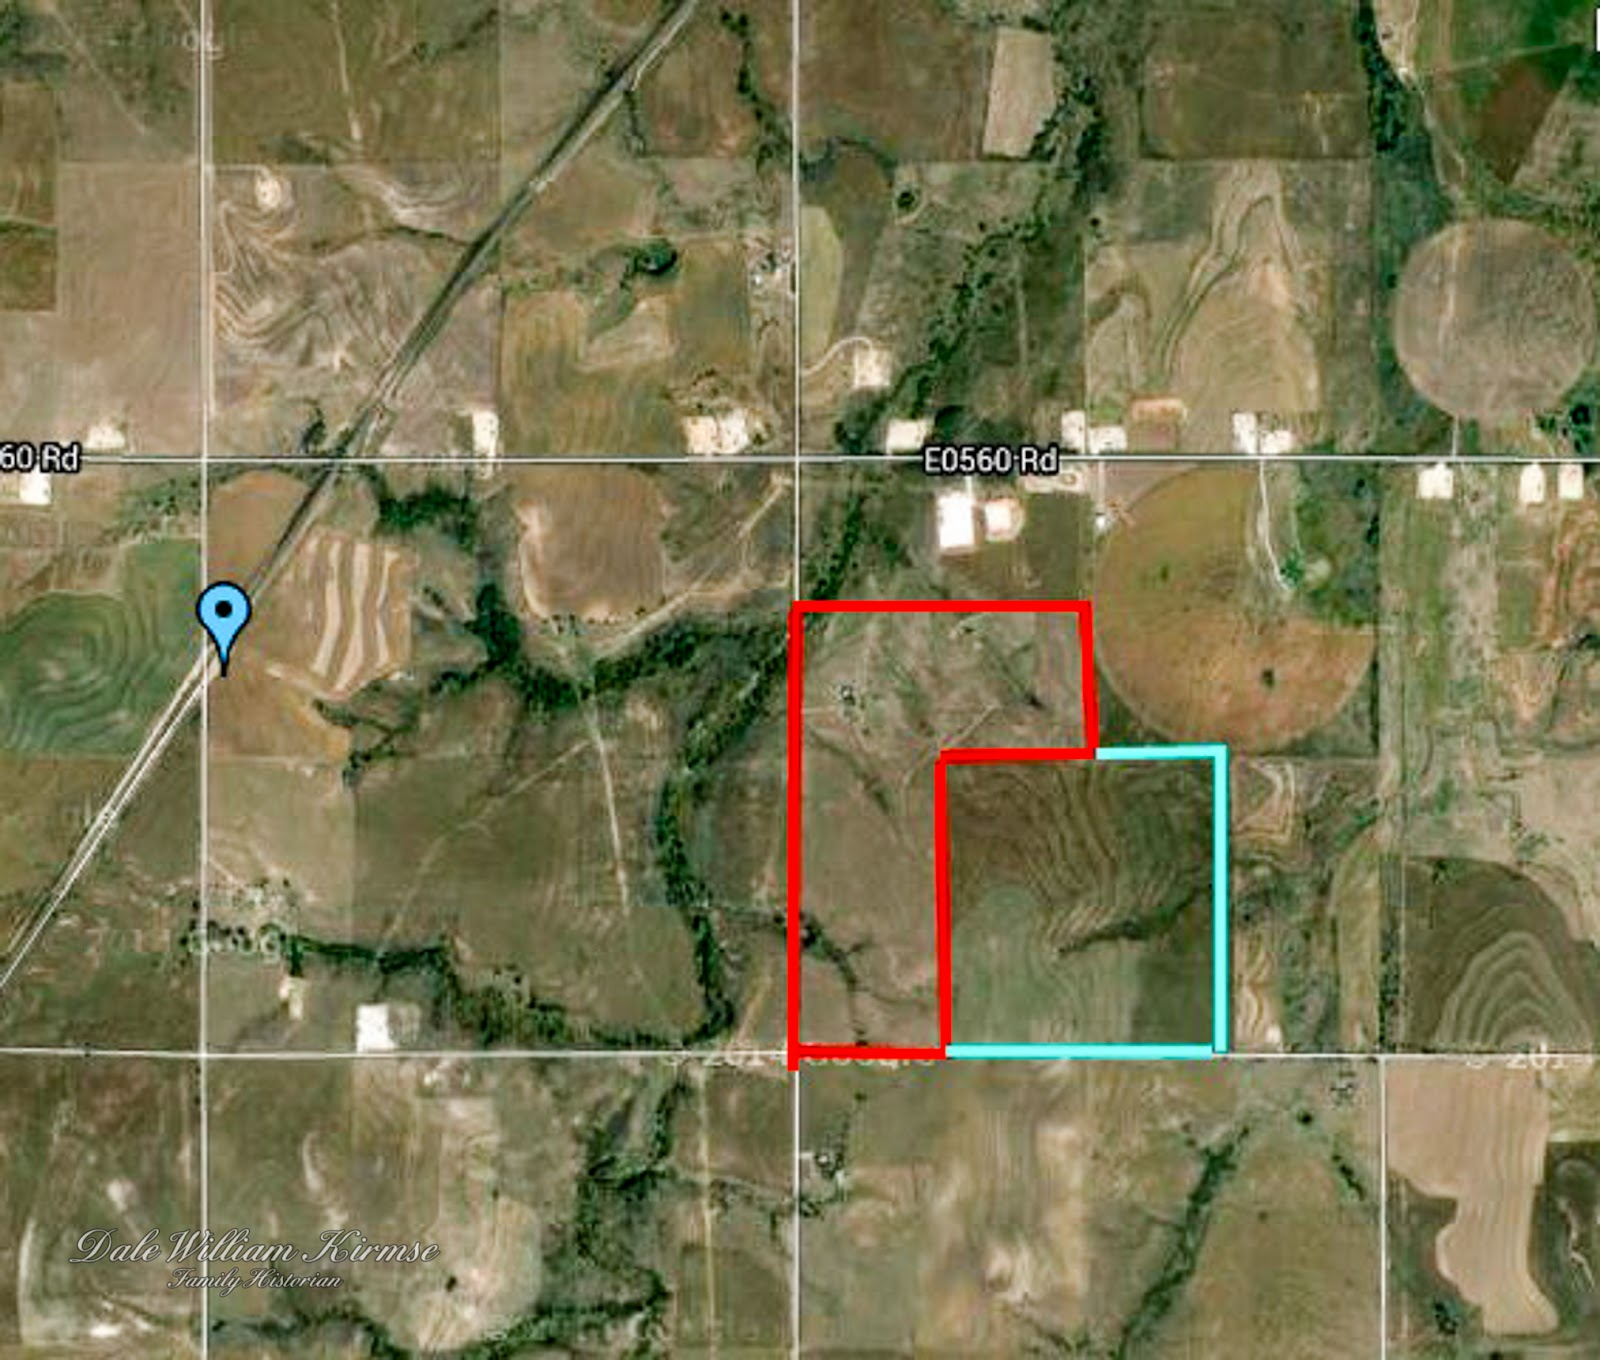 a google earth map showing the location of the wilhelm kirmse homestead outlined in red and the martha kirmse property outlined in blue